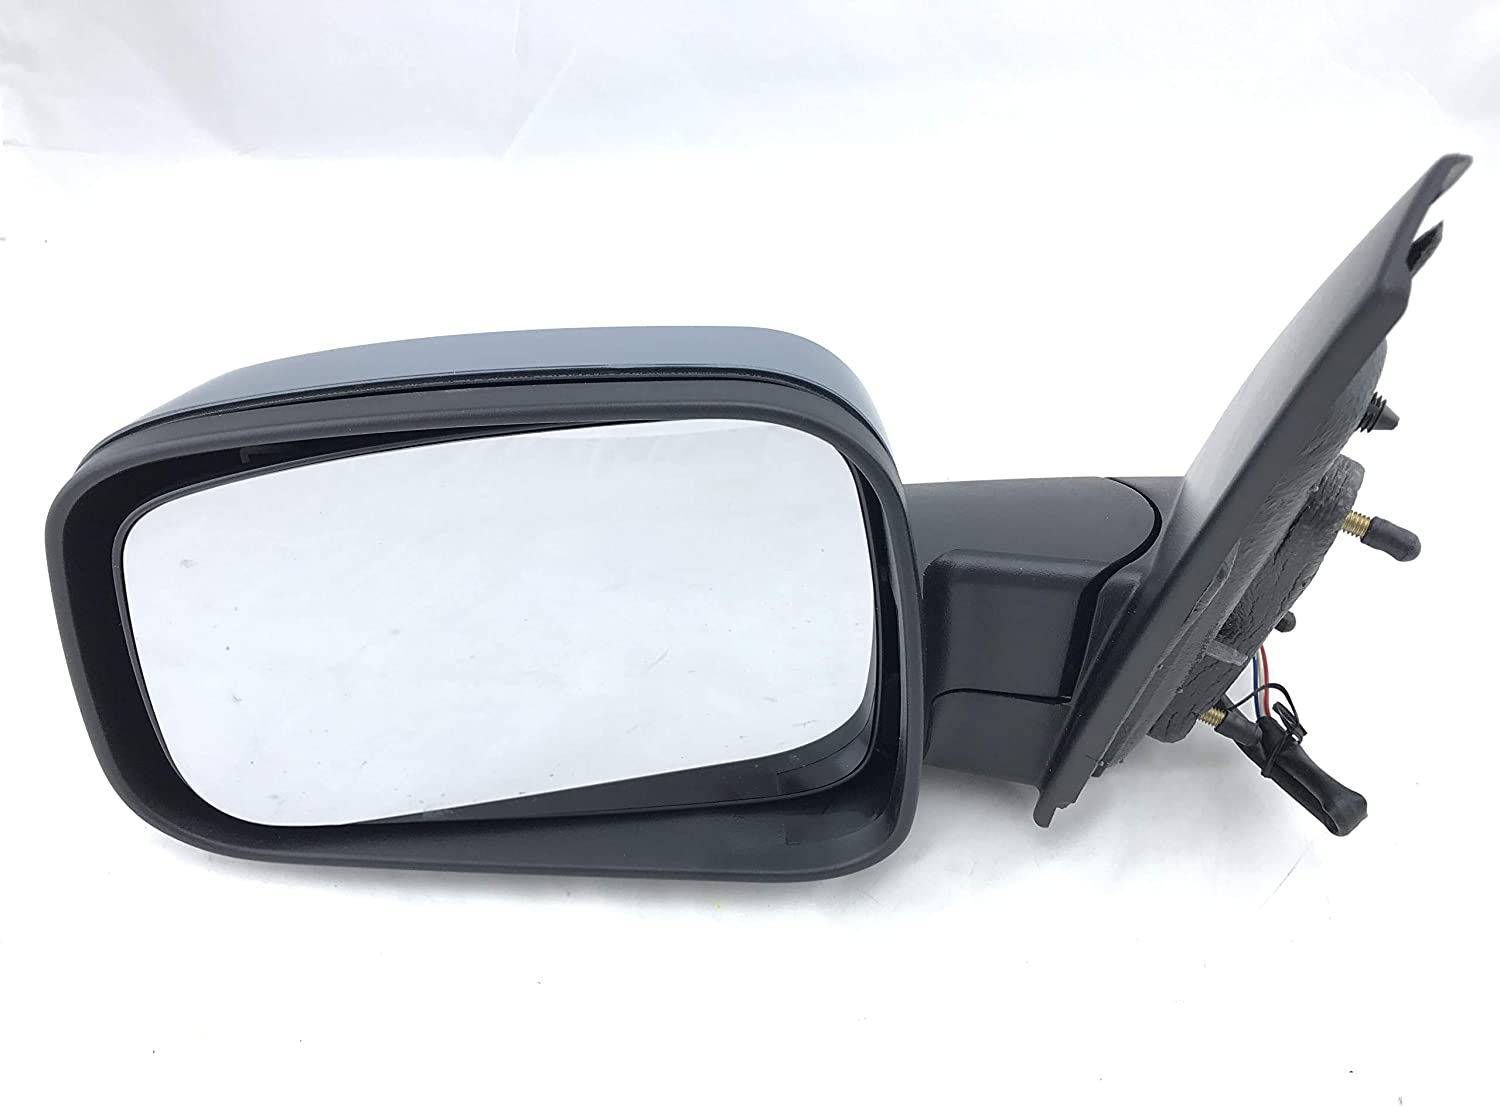 Passenger Side Mirror for Chevrolet HHR 06-11 PWR N-HT MIR LH OE: GM1320366 PTM GRAY | Left Outside Rear View Mirror Parts Link #: 20923845